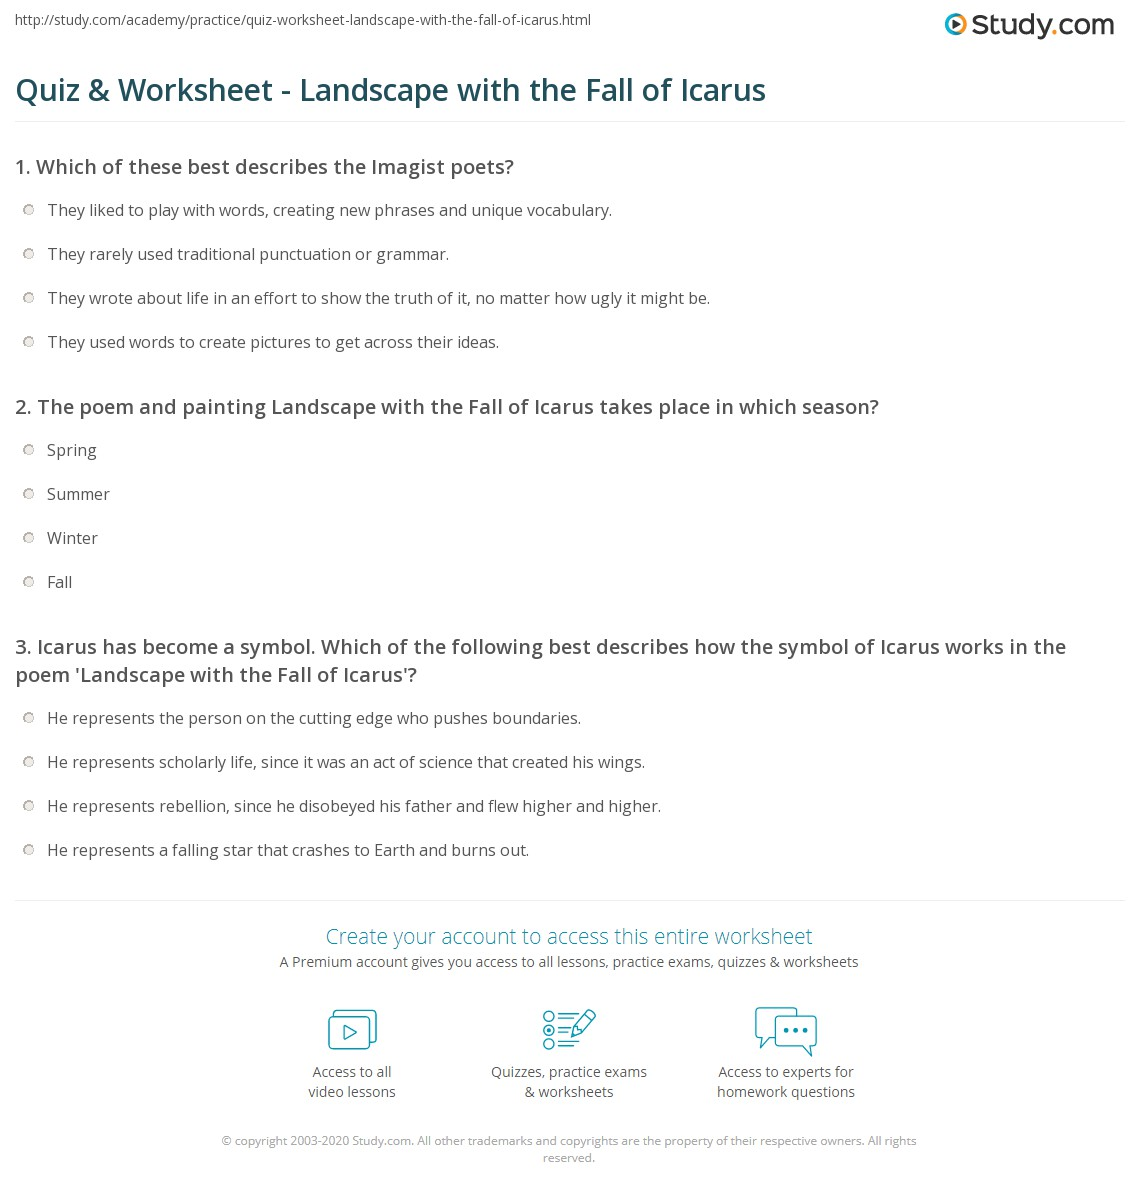 Quiz & Worksheet - Landscape with the Fall of Icarus | Study.com